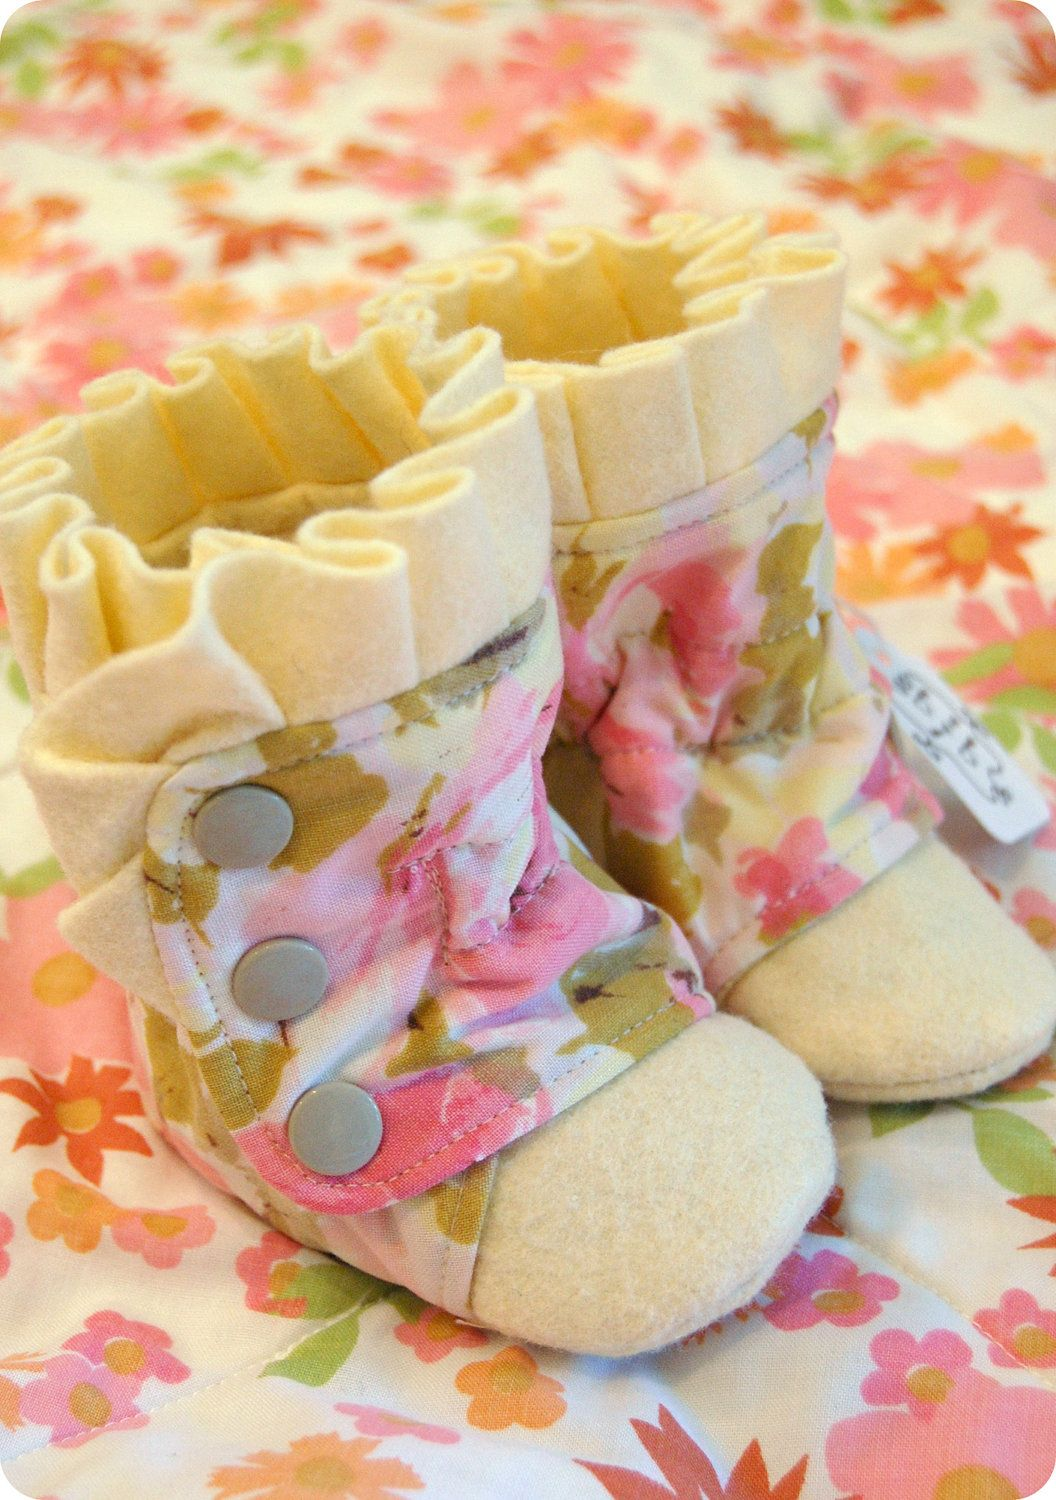 Baby Boots Vintage Floral and Wool 0-3 3-6 6-12 months | Babys ...